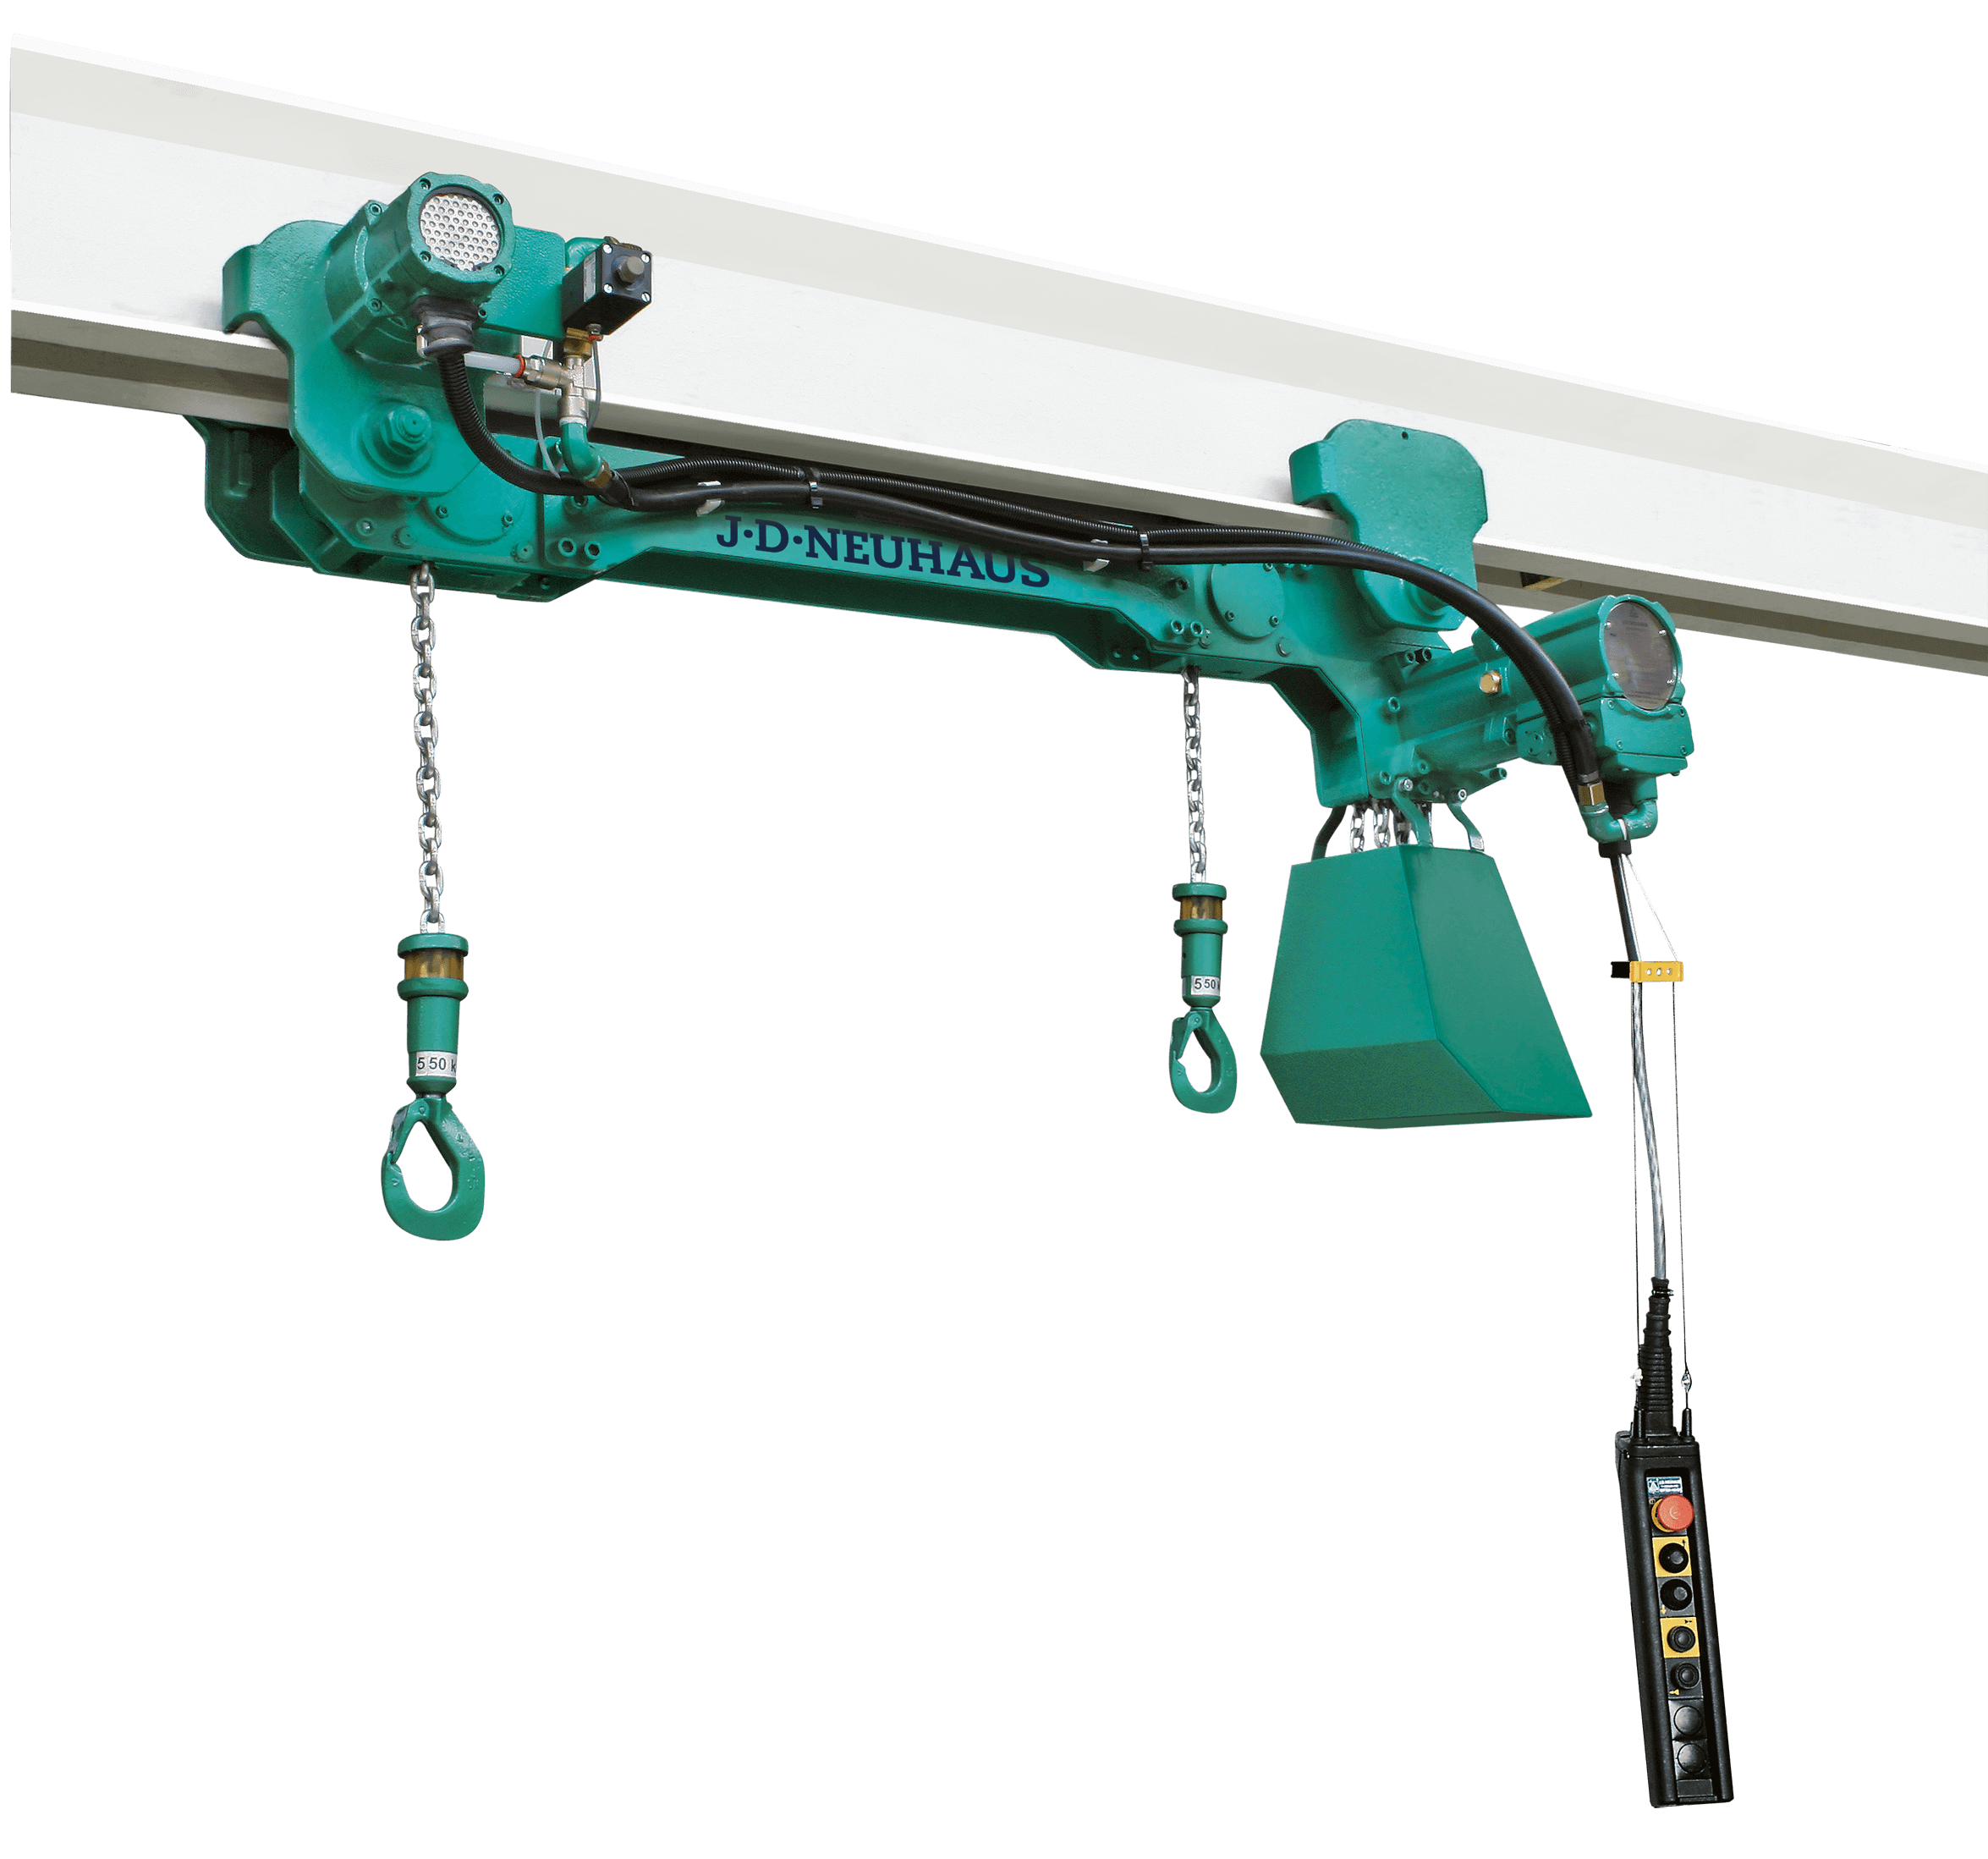 JDN Big Bag Hoist